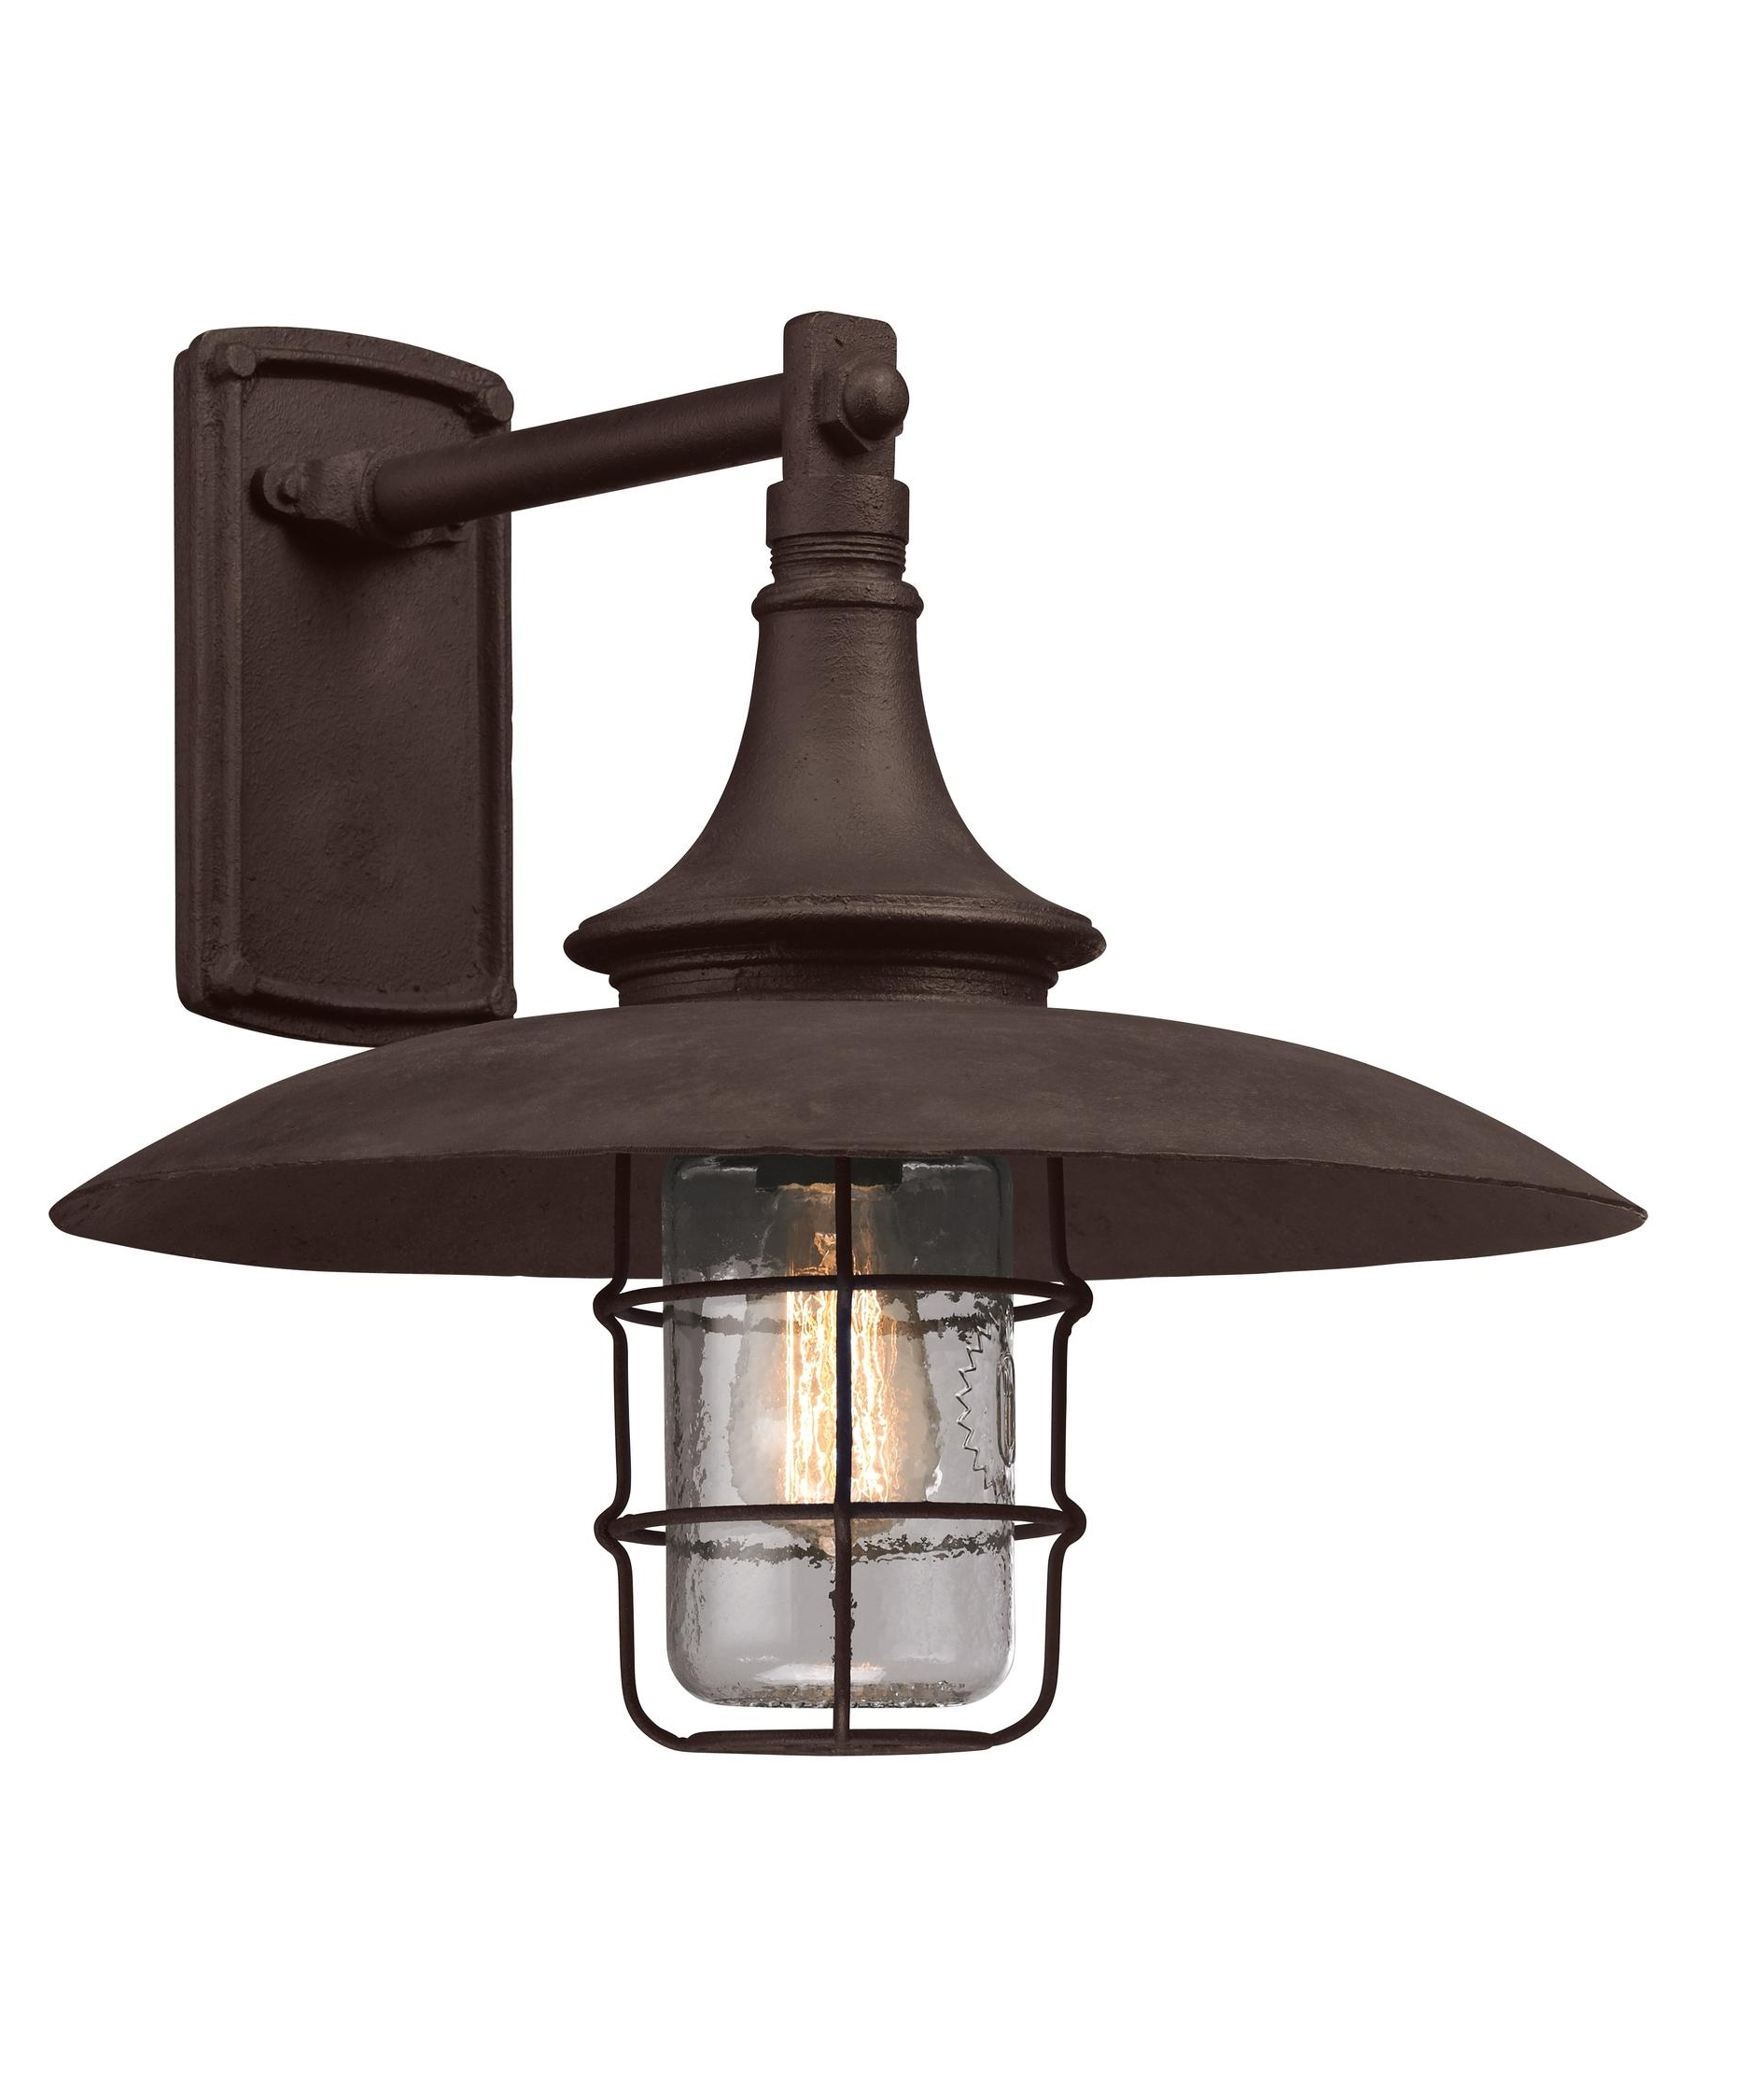 Troy Lighting B3222 Allegany 16 Inch Wide 1 Light Outdoor Wall Light Within Current Arts And Crafts Outdoor Wall Lighting (View 7 of 20)